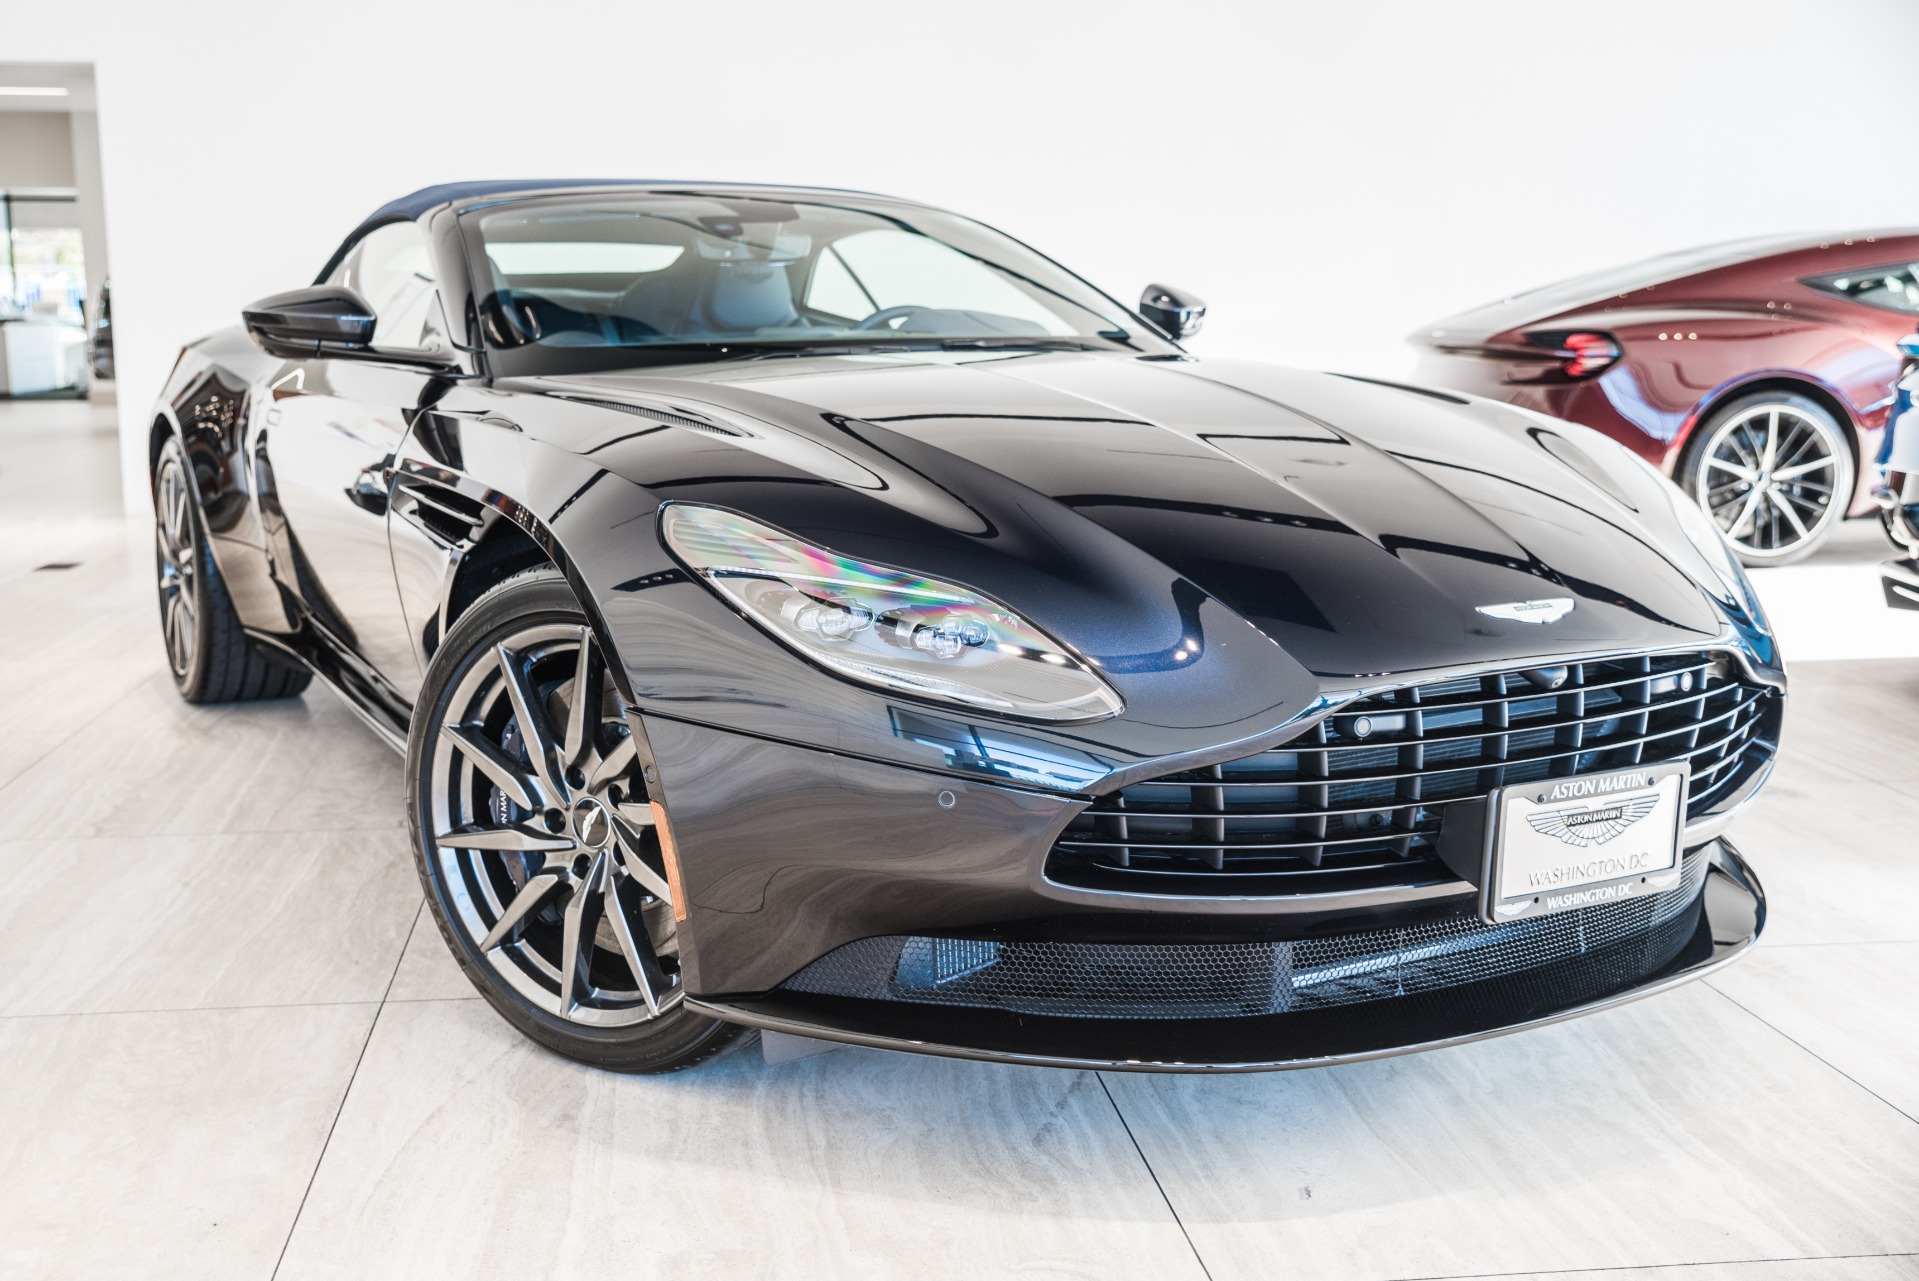 2020 Aston Martin Db11 Volante Stock 20nm09024 For Sale Near Vienna Va Va Aston Martin Dealer For Sale In Vienna Va 20nm09024 Exclusive Automotive Group